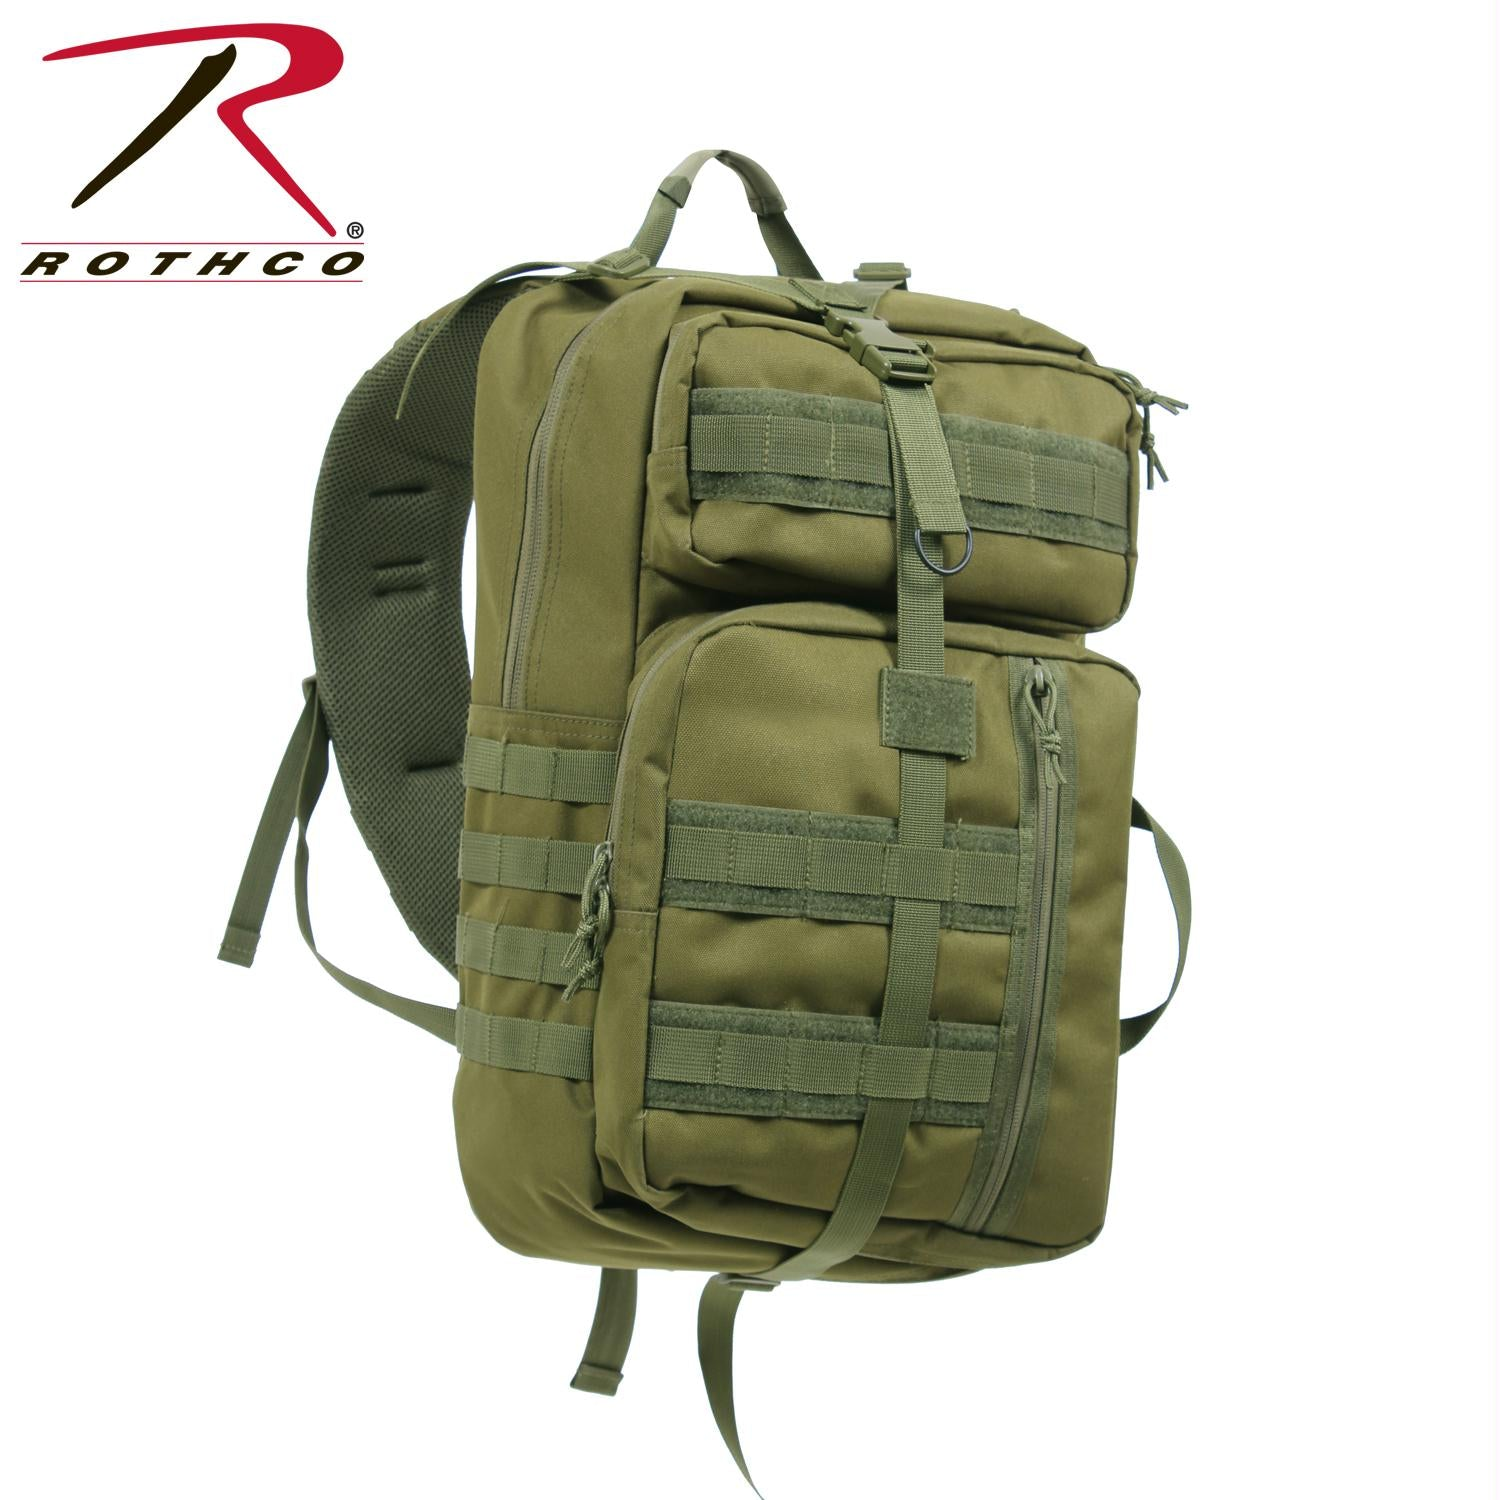 Rothco Tactisling Transport Pack - Olive Drab